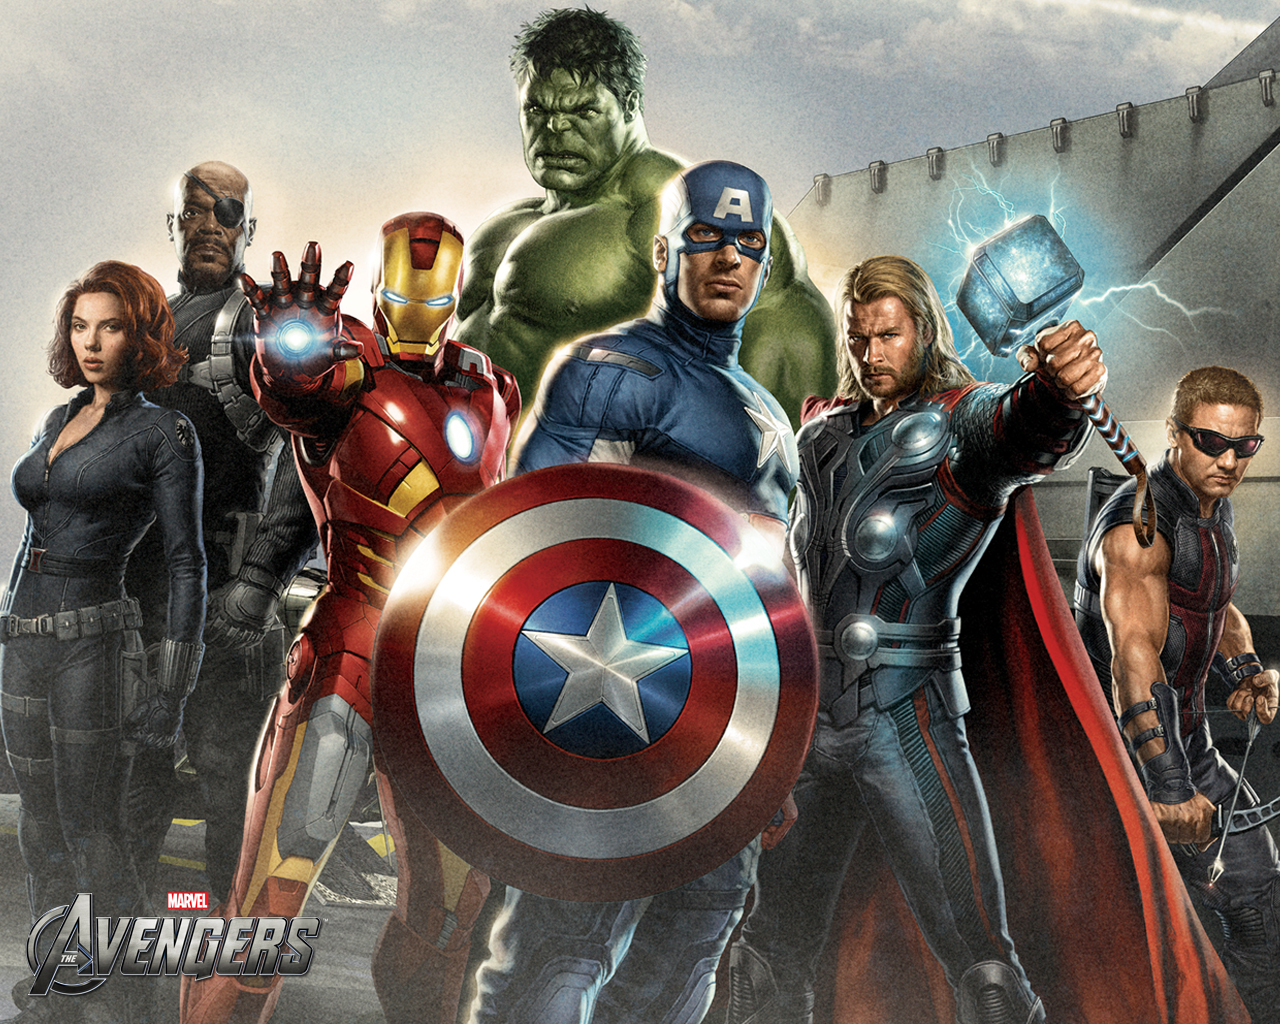 What's Your Avengers